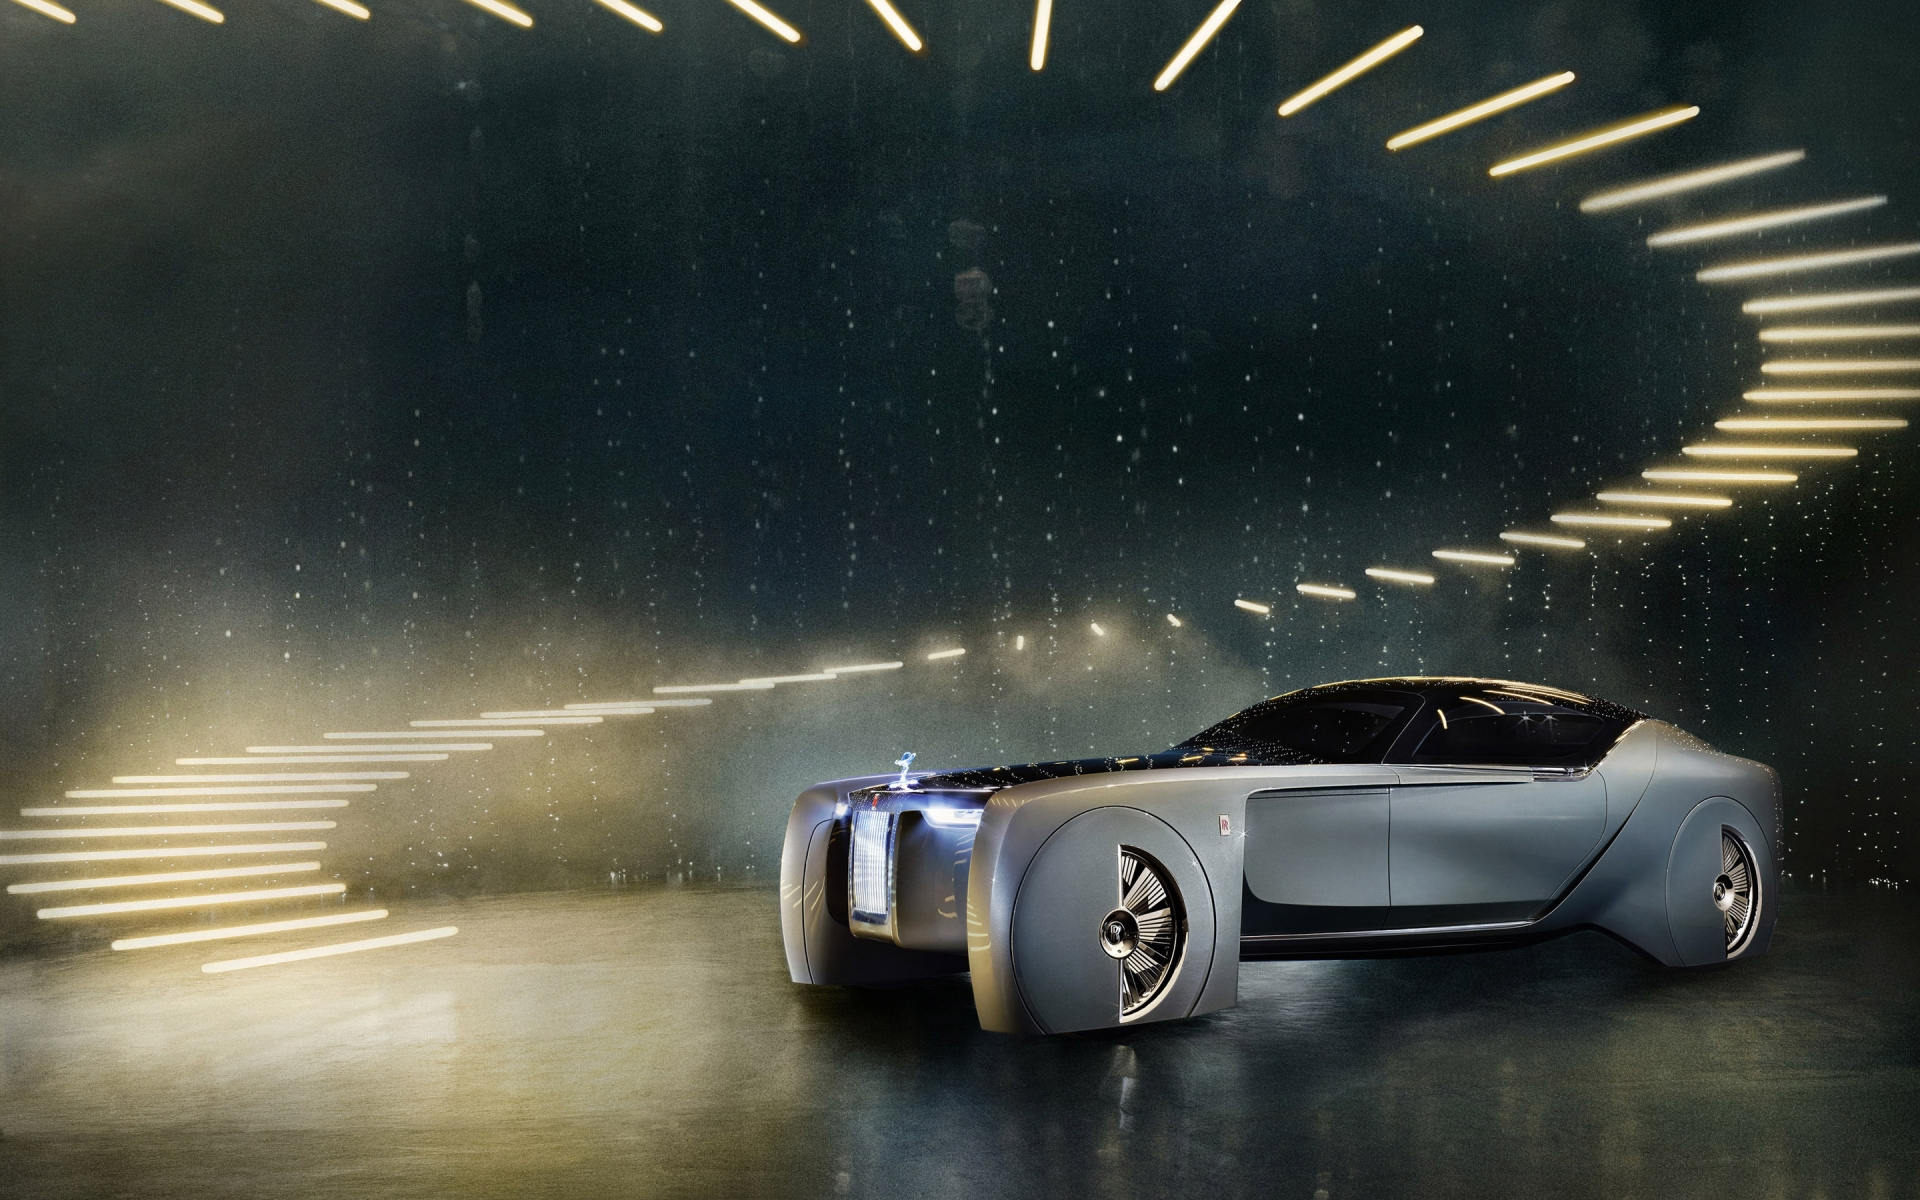 Rolls-Royce Concept Car 2016 for 1920 x 1200 widescreen resolution